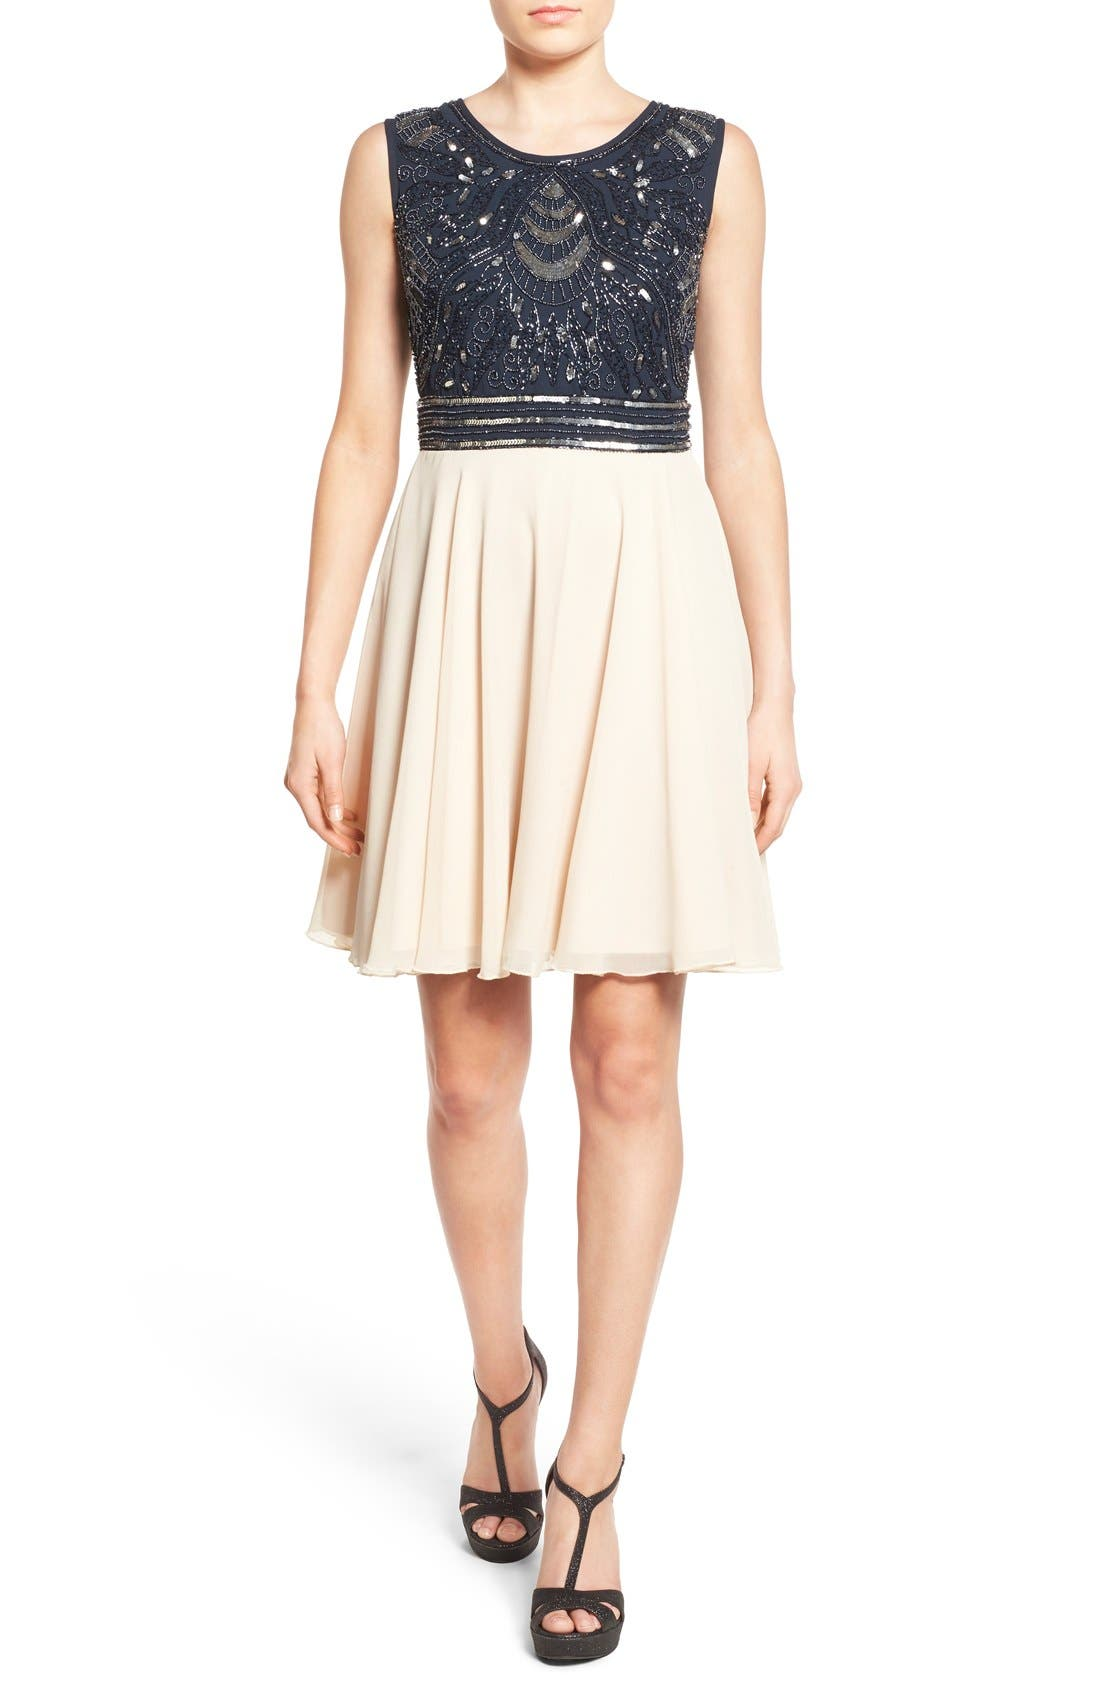 Alternate Image 1 Selected - Lace & Beads 'Miami' Embellished Skater Dress